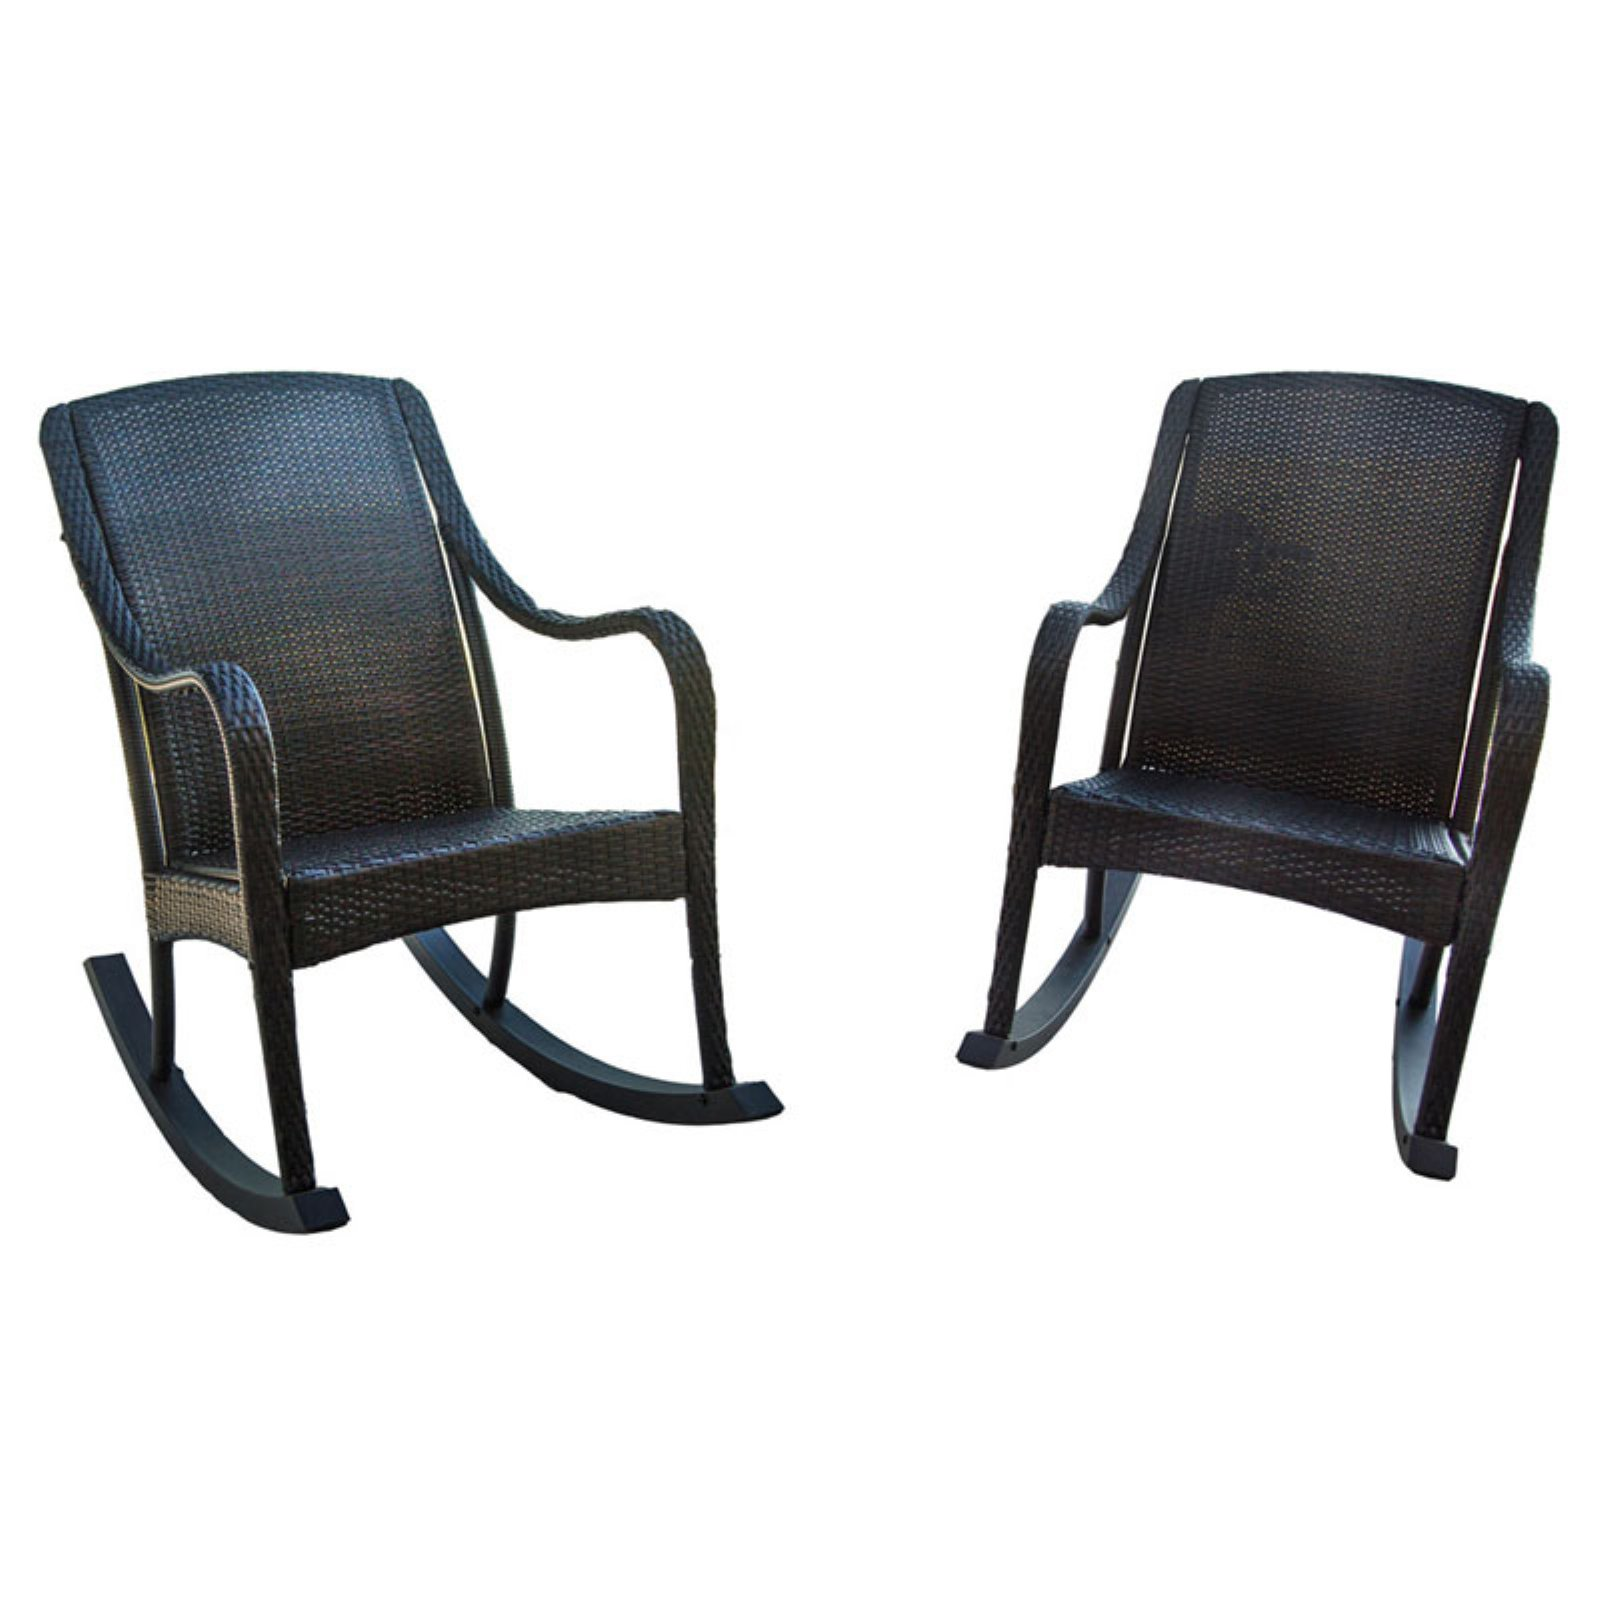 Hanover Orleans All-Weather Wicker Rocking Chairs - Set of 2